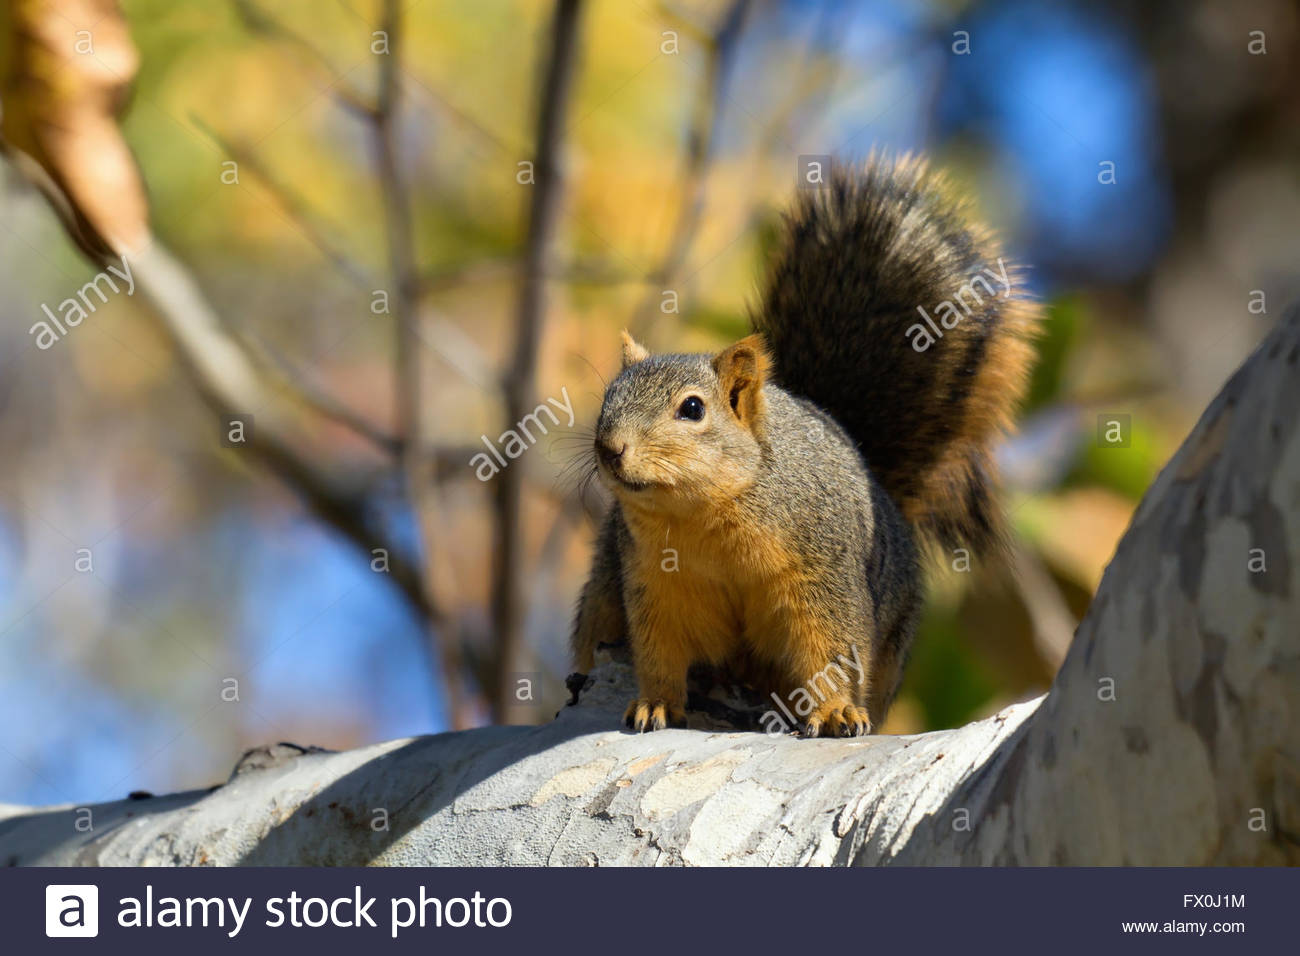 Fox squirrel on branch in fall foliage - Stock Image